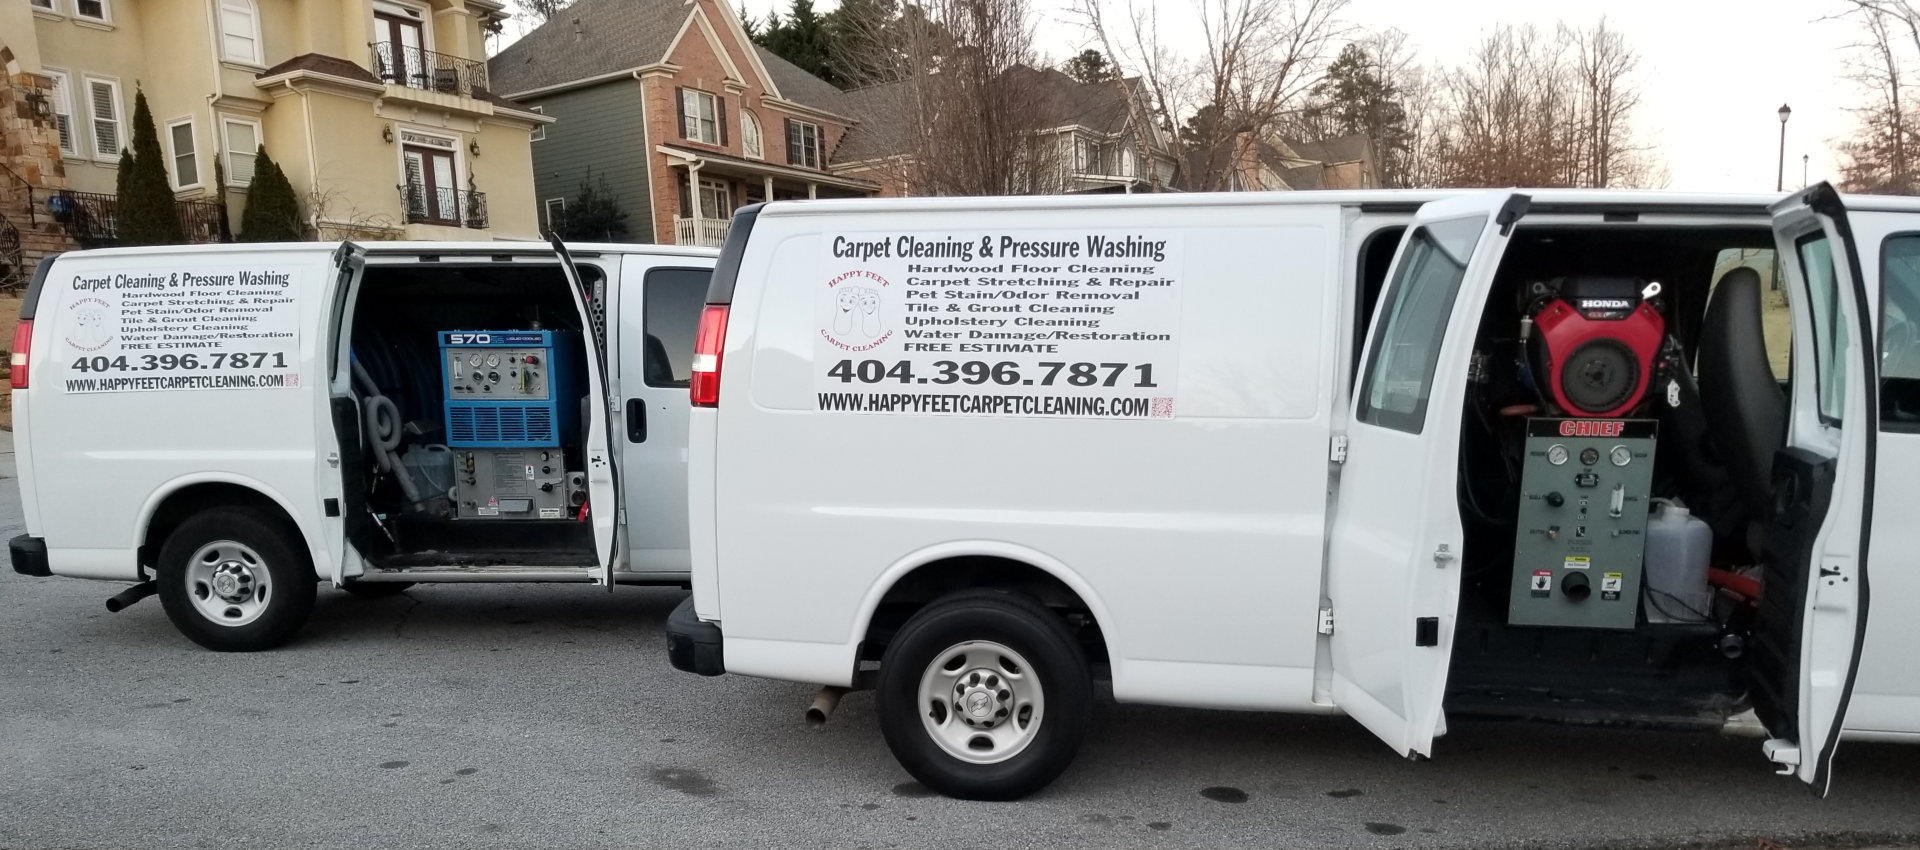 Van of housekkeeping cleaning